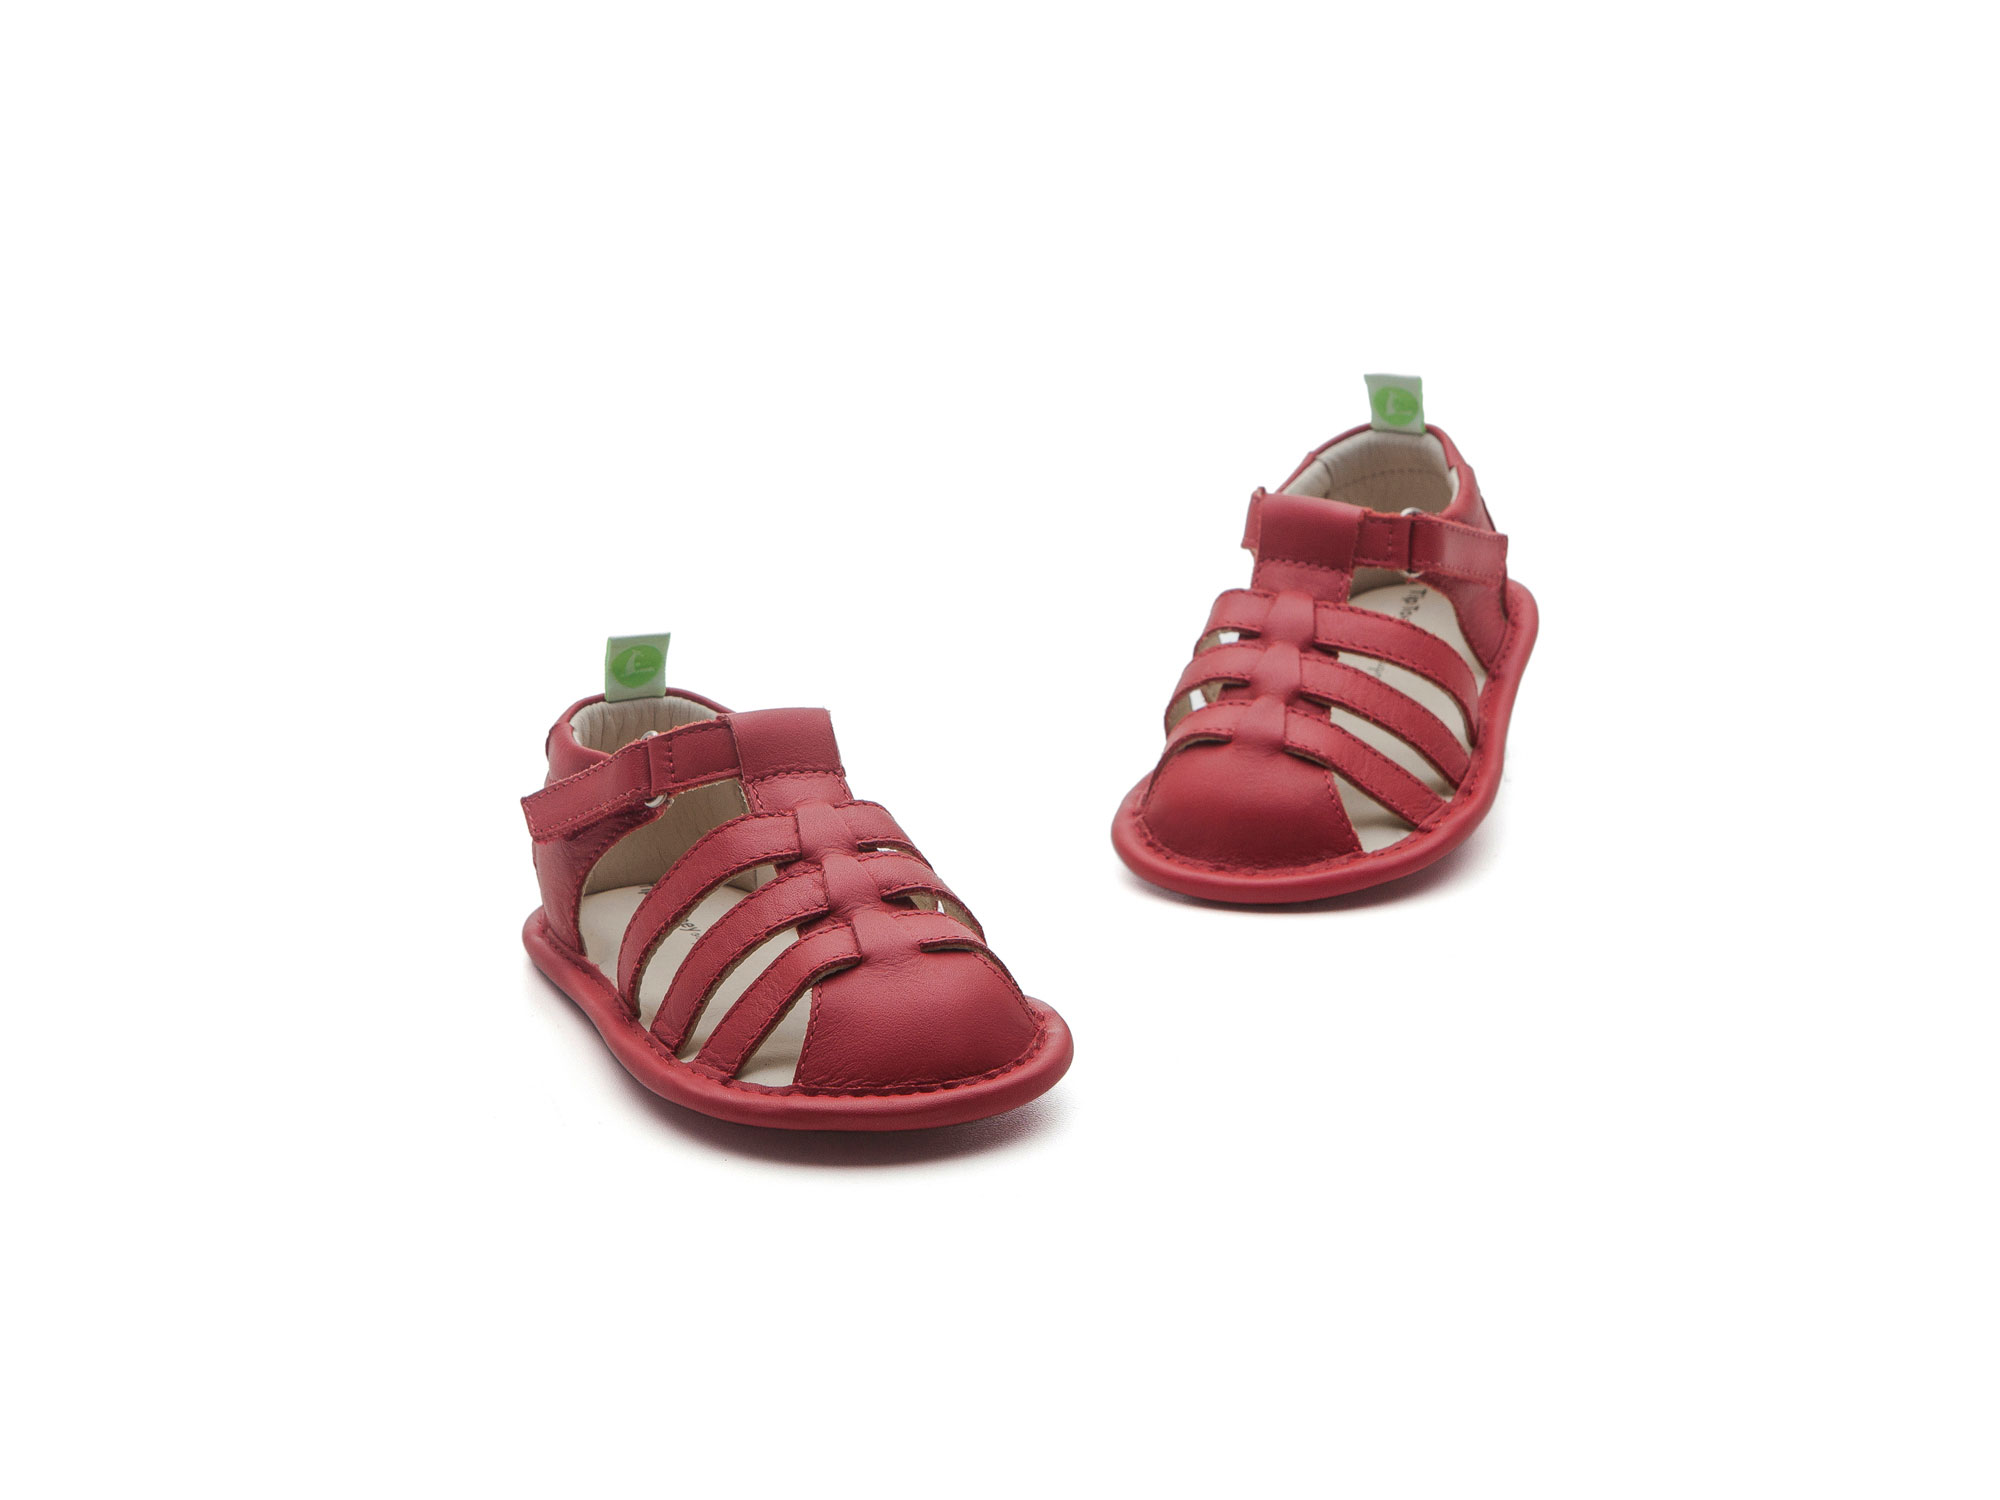 Sandal Minty Pomo  Baby for ages 0 to 2 years - 2